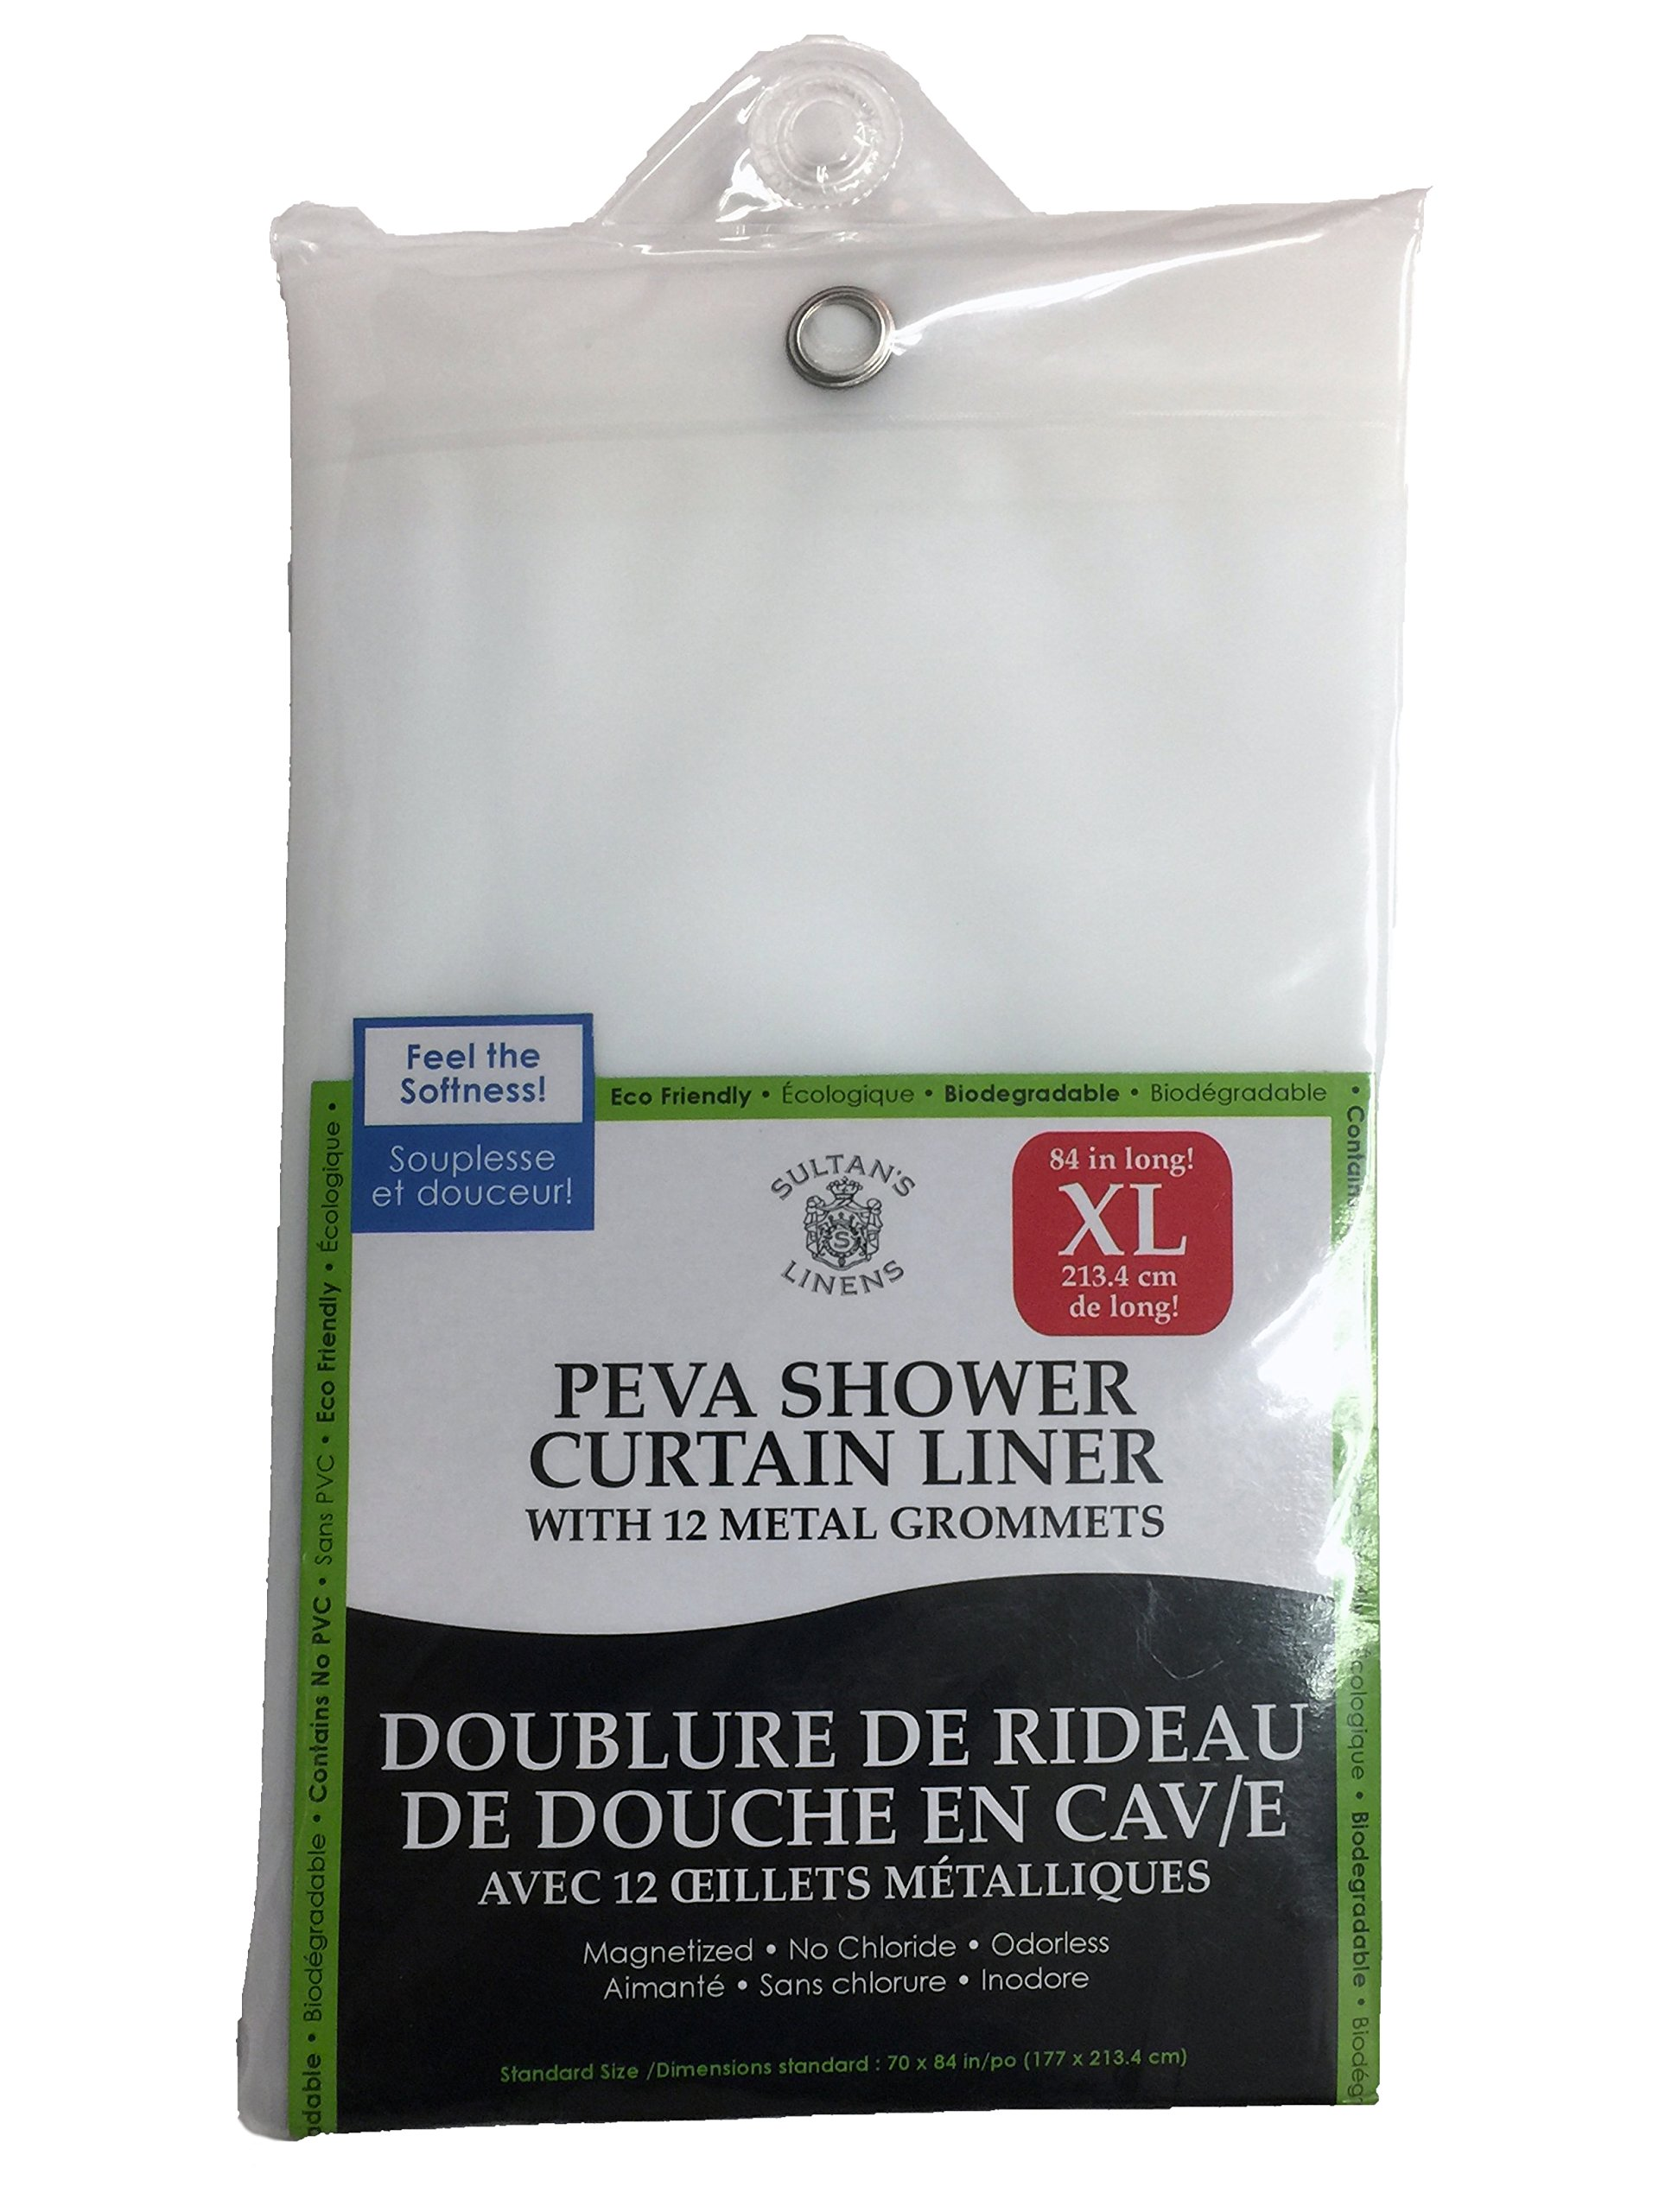 Extra Long PEVA Shower Curtain Liner 84'' Long, Heavy Gauge PEVA, Magnetized, Odorless, Reinforced With Metal Grommets, Clear